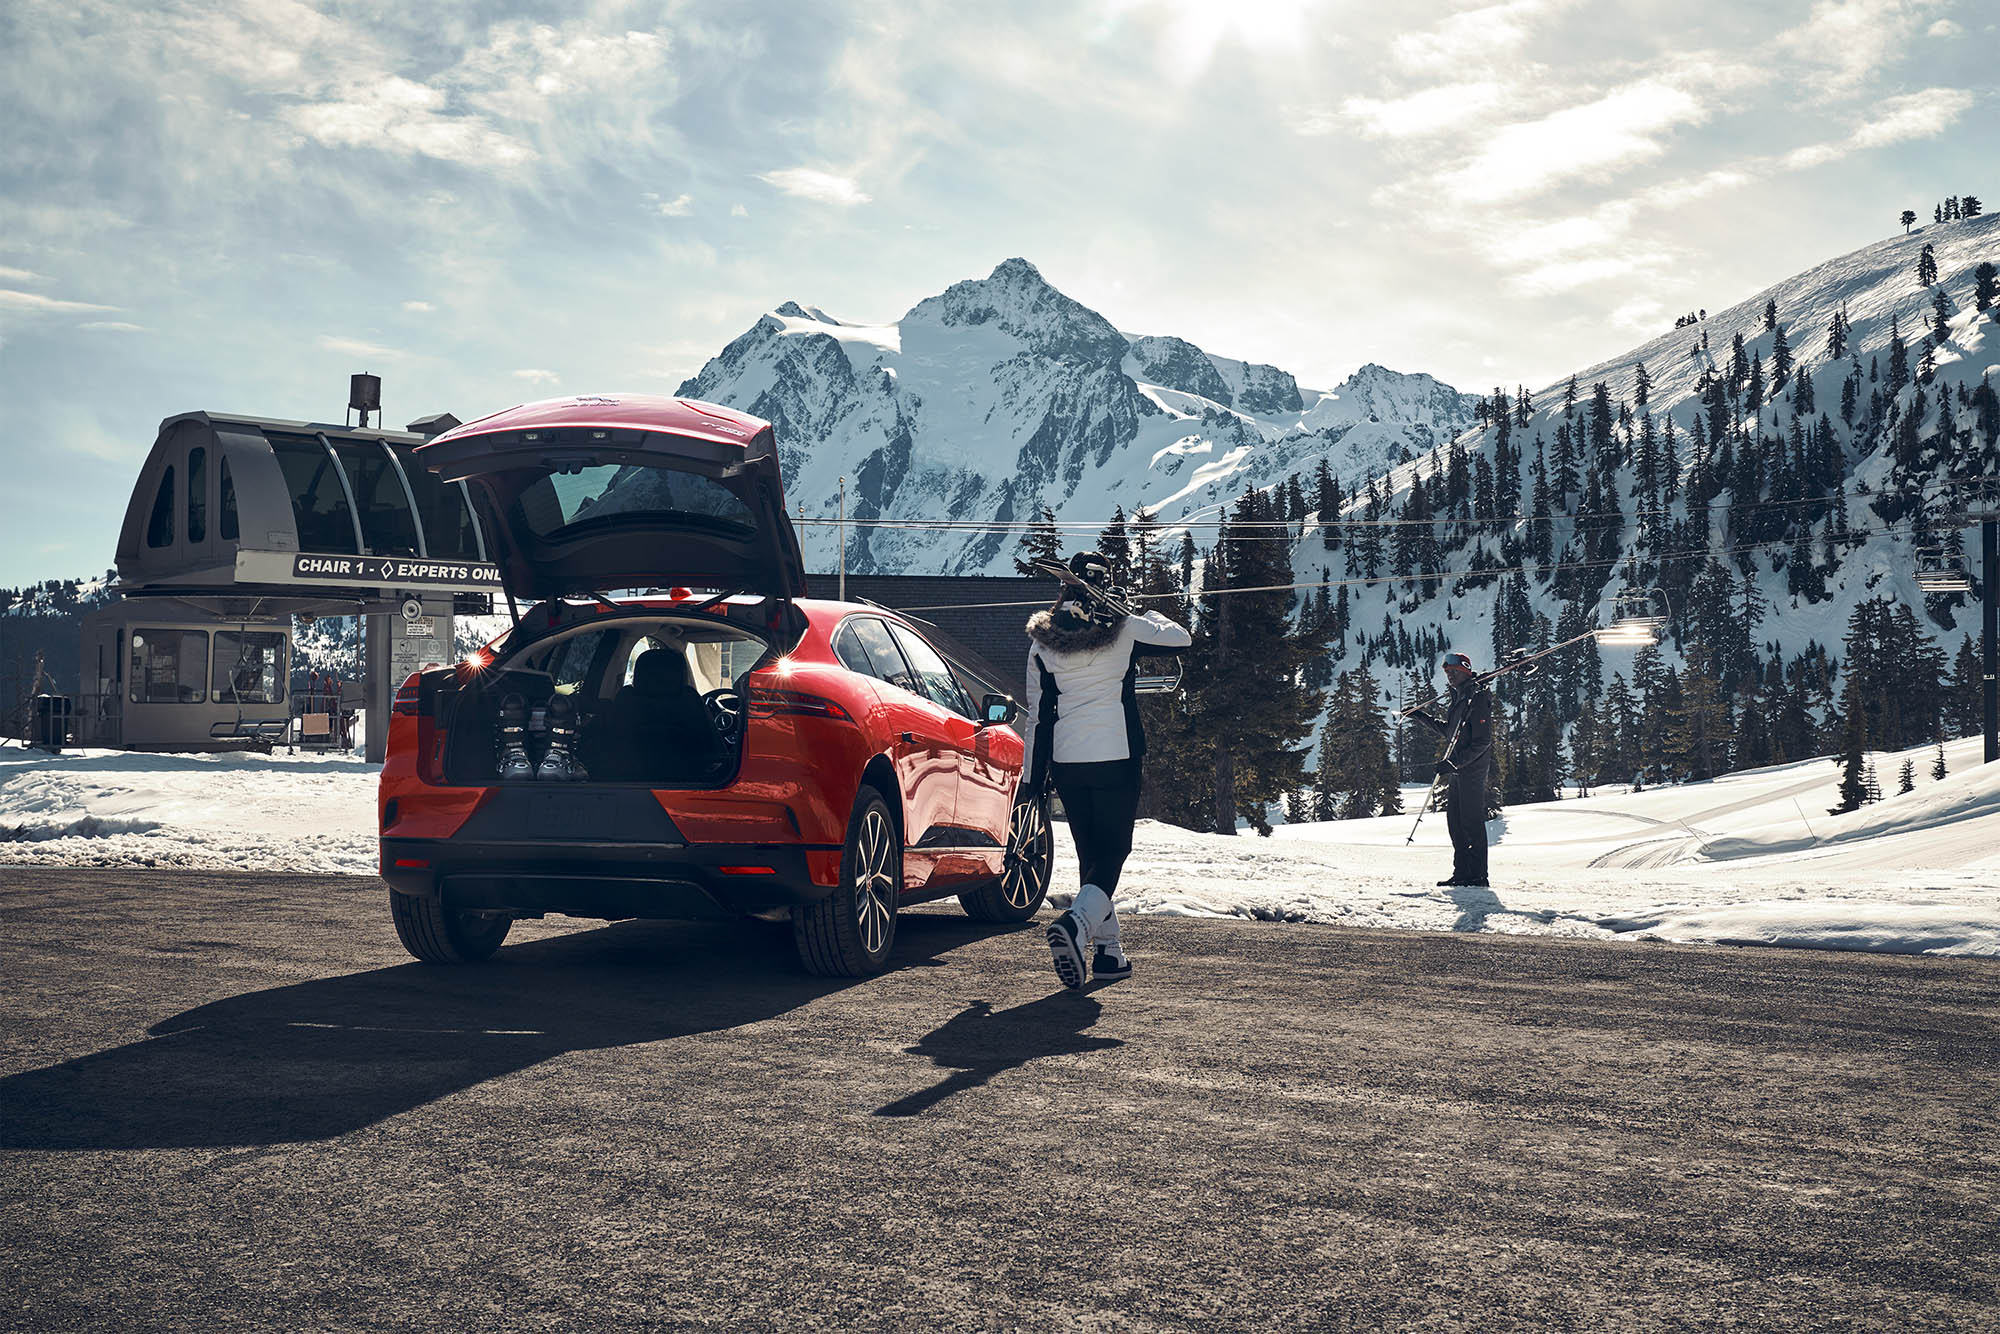 19-045_JLR_iPace_winter_SHOT_02_COMP01_FED_PR1_talent